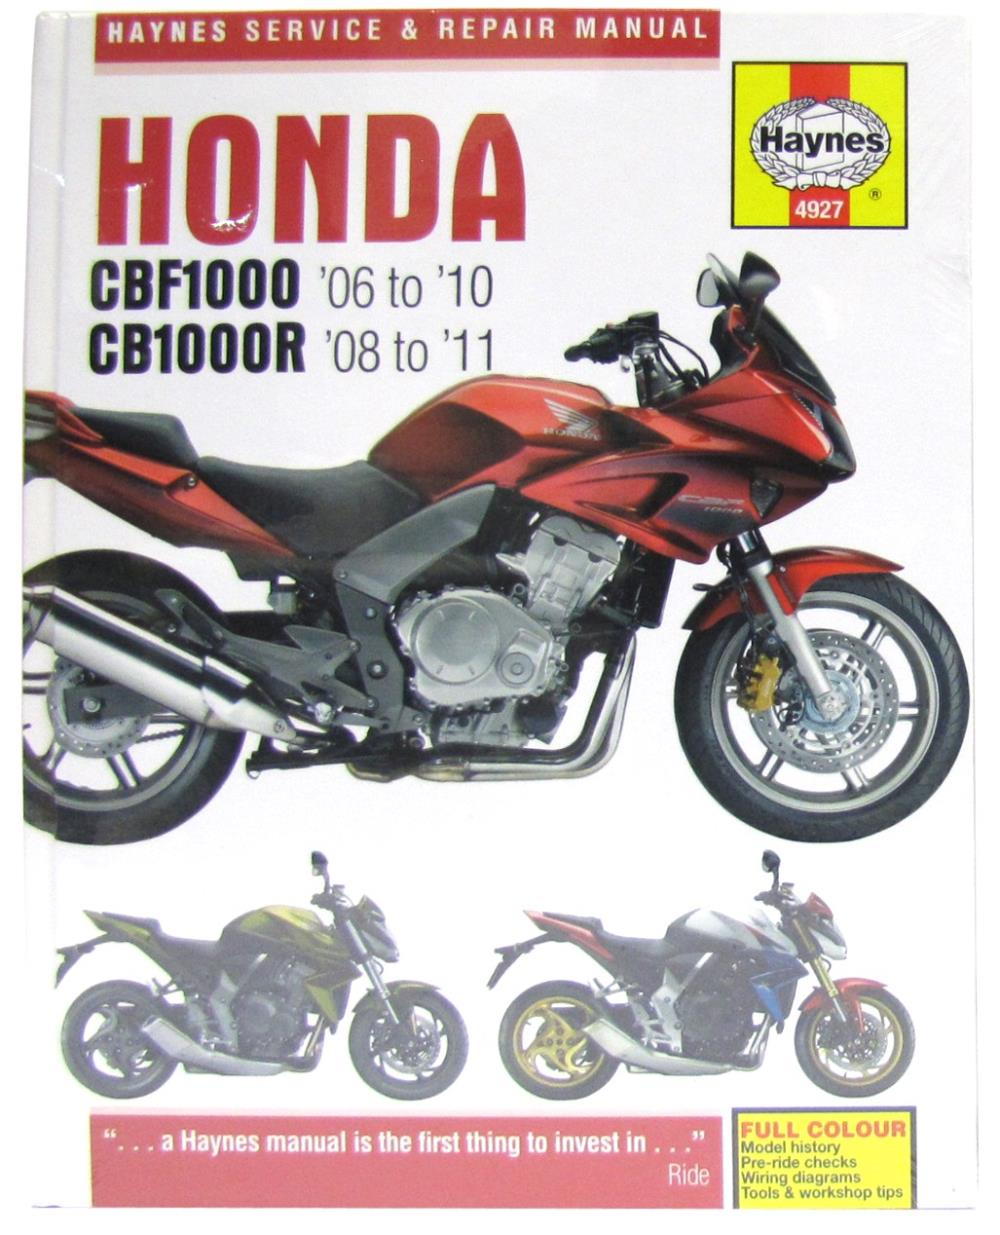 Workshop Manual Honda Cbf1000 06 10 Cb1000r 08 11 Ebay